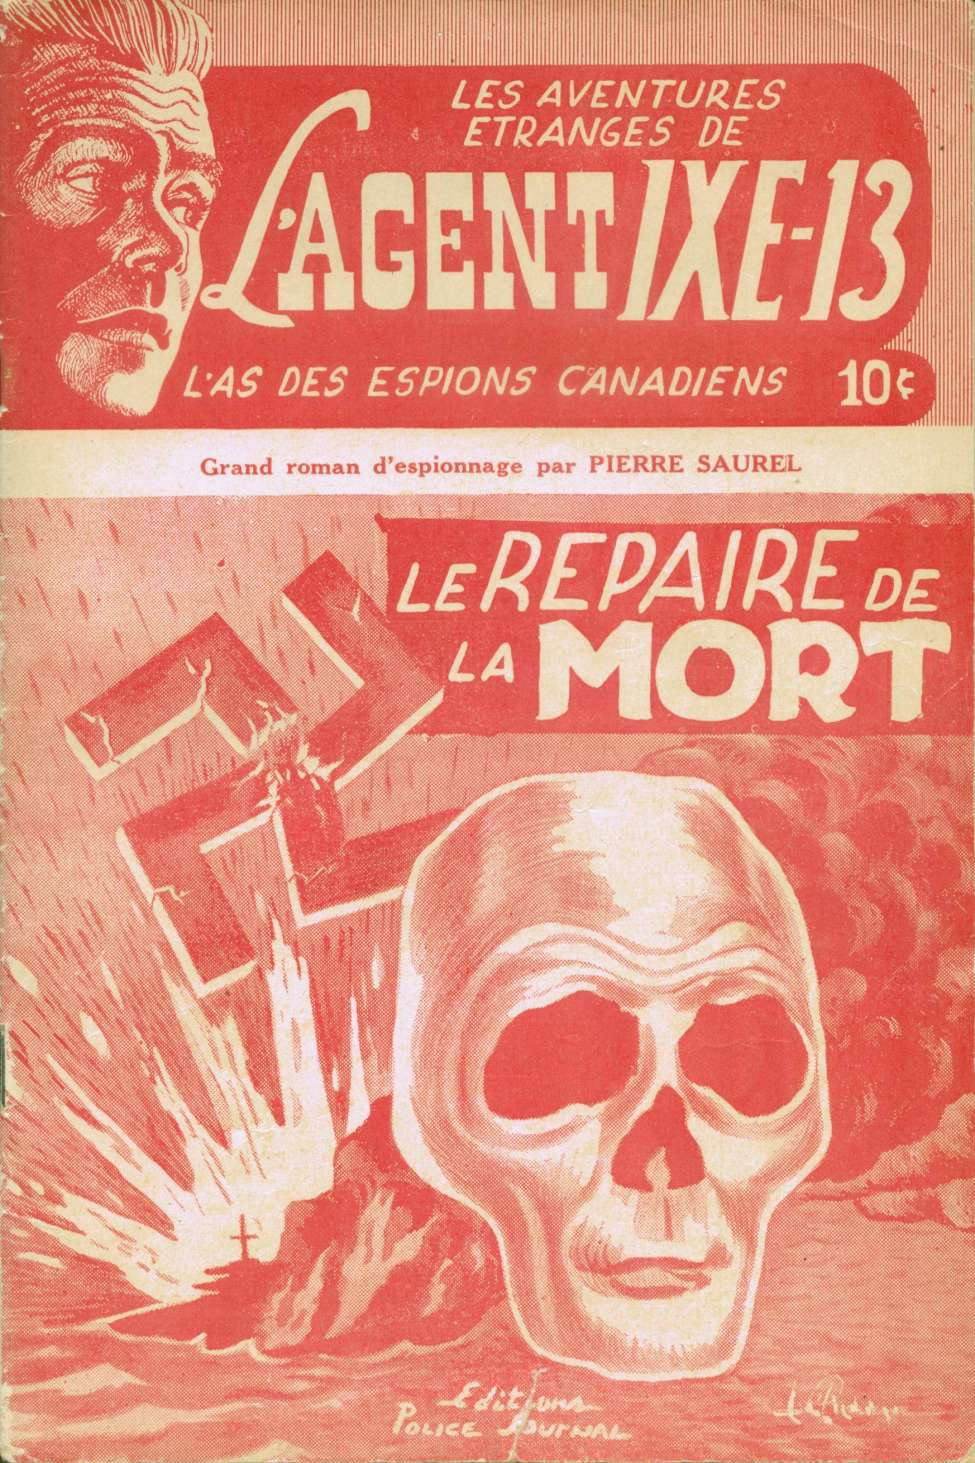 Comic Book Cover For L'Agent IXE-13 v1 001 - Le repaire de la mort